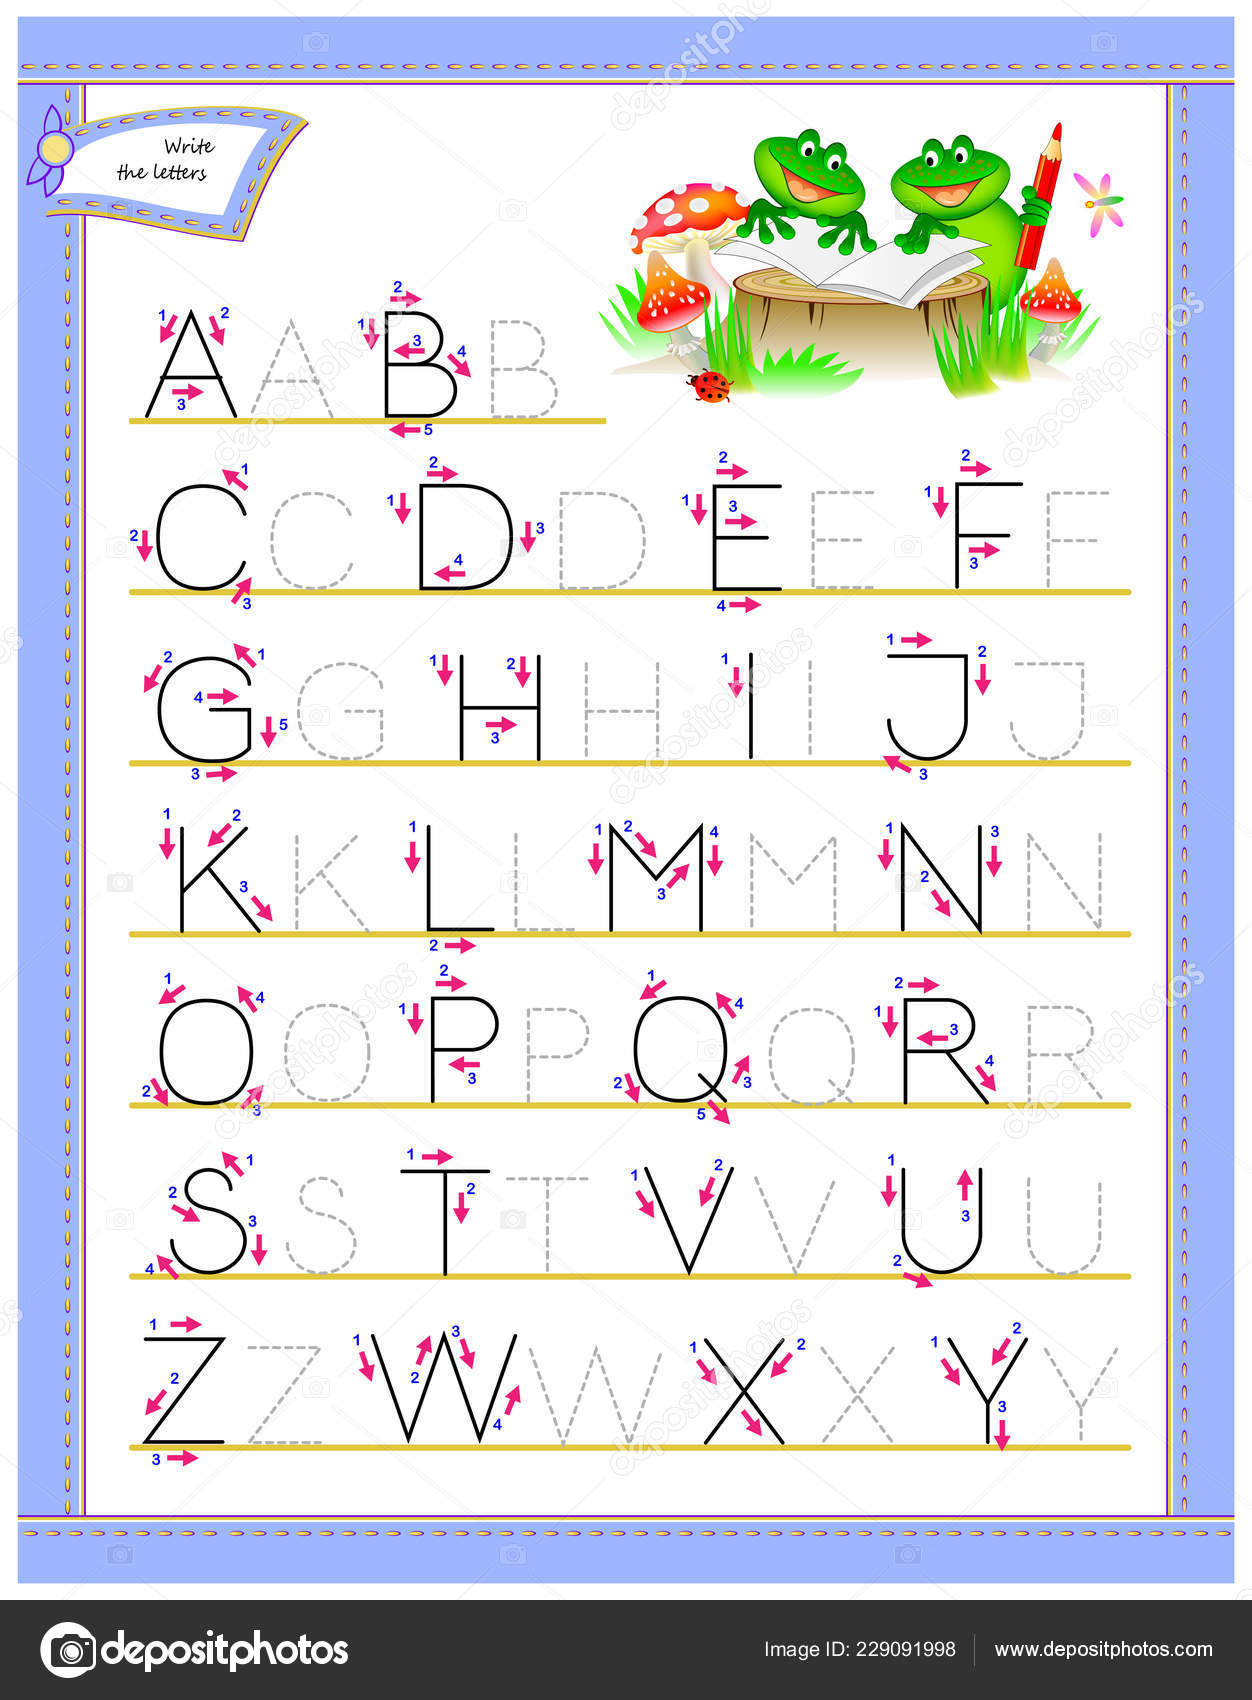 Tracing Abc Letters Study English Alphabet Worksheet Kids pertaining to Tracing Letters Of The Alphabet For Preschoolers